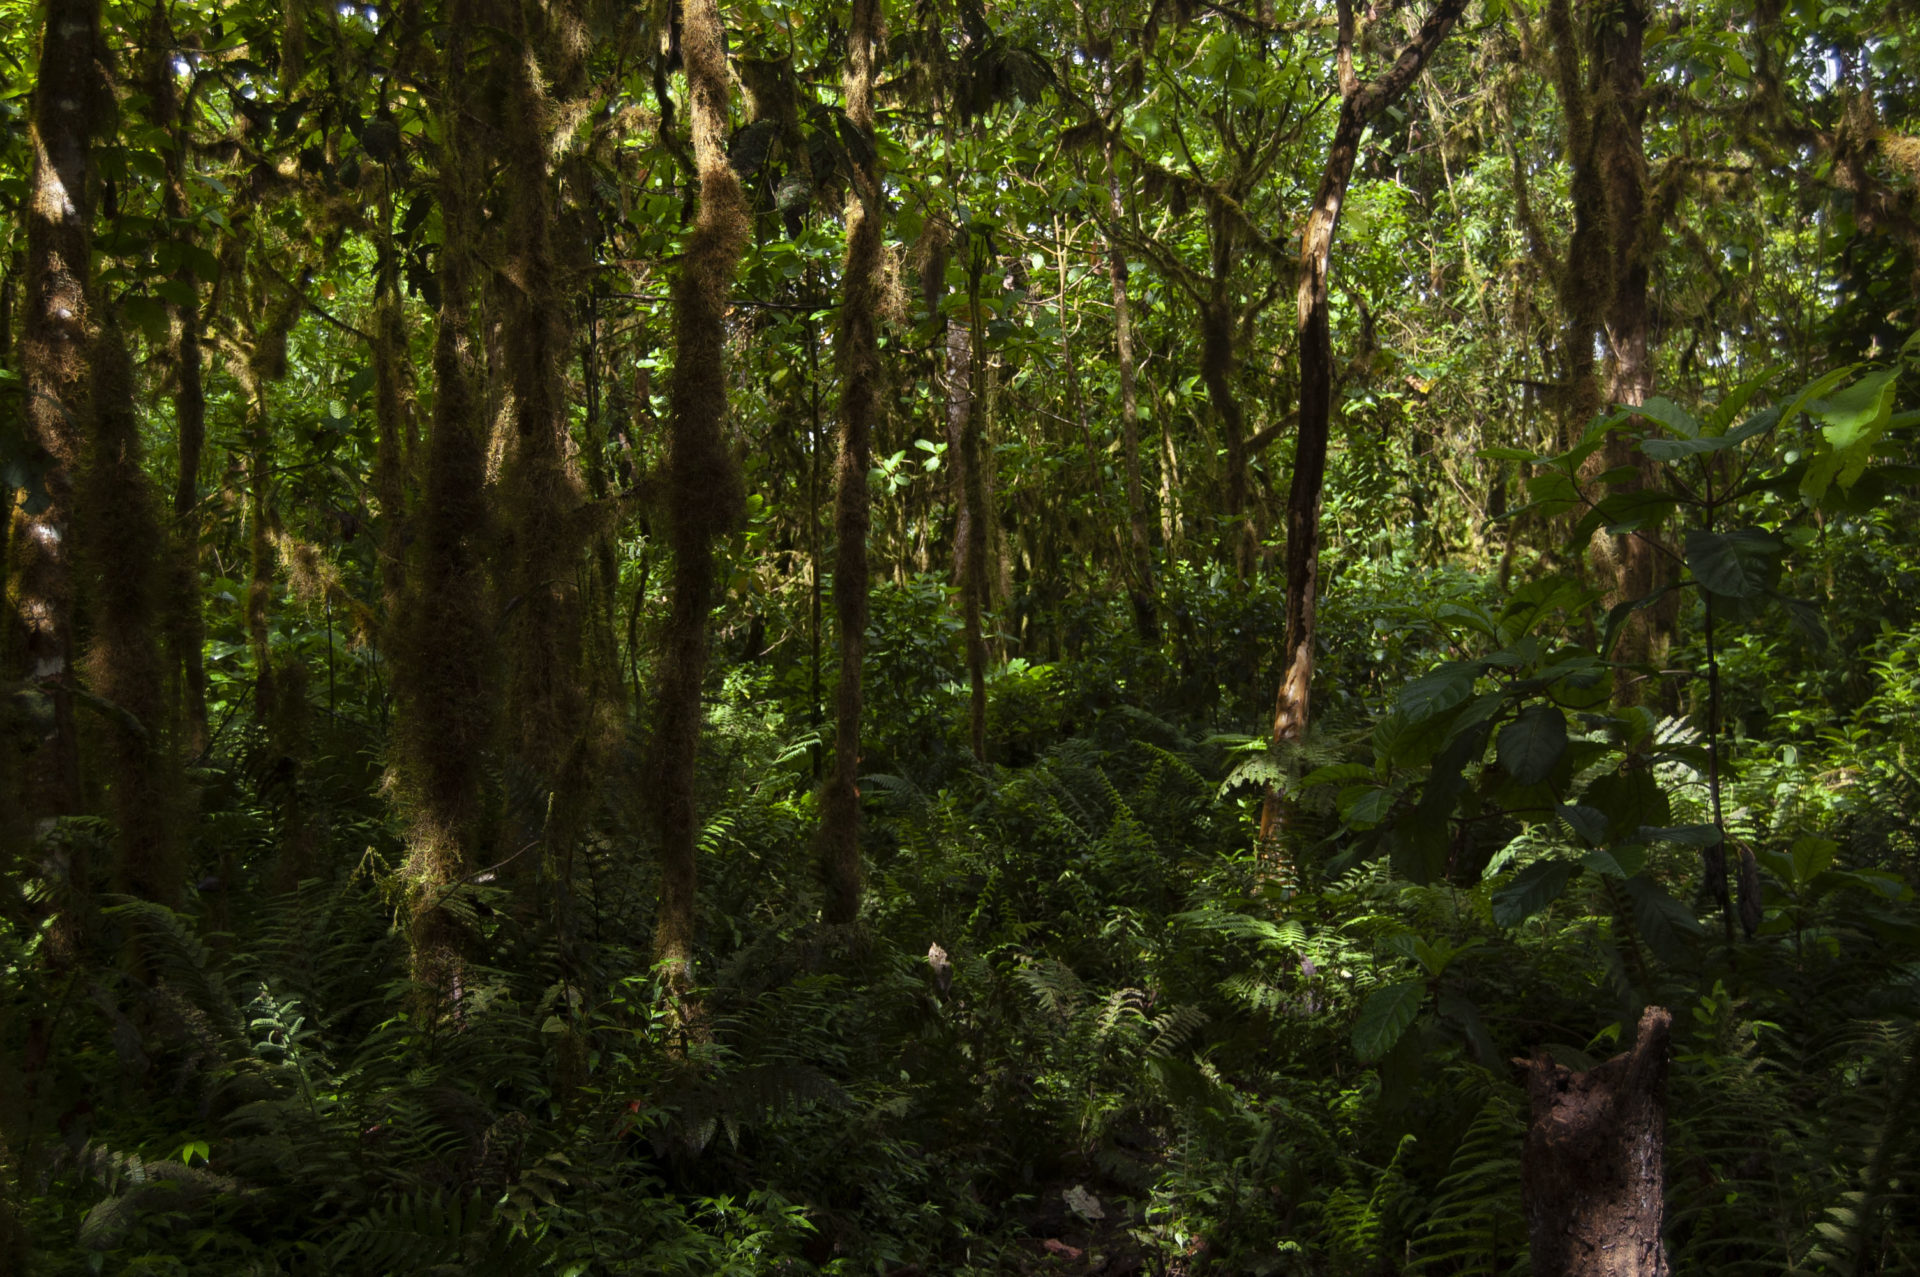 Forest in Galapagos Islands